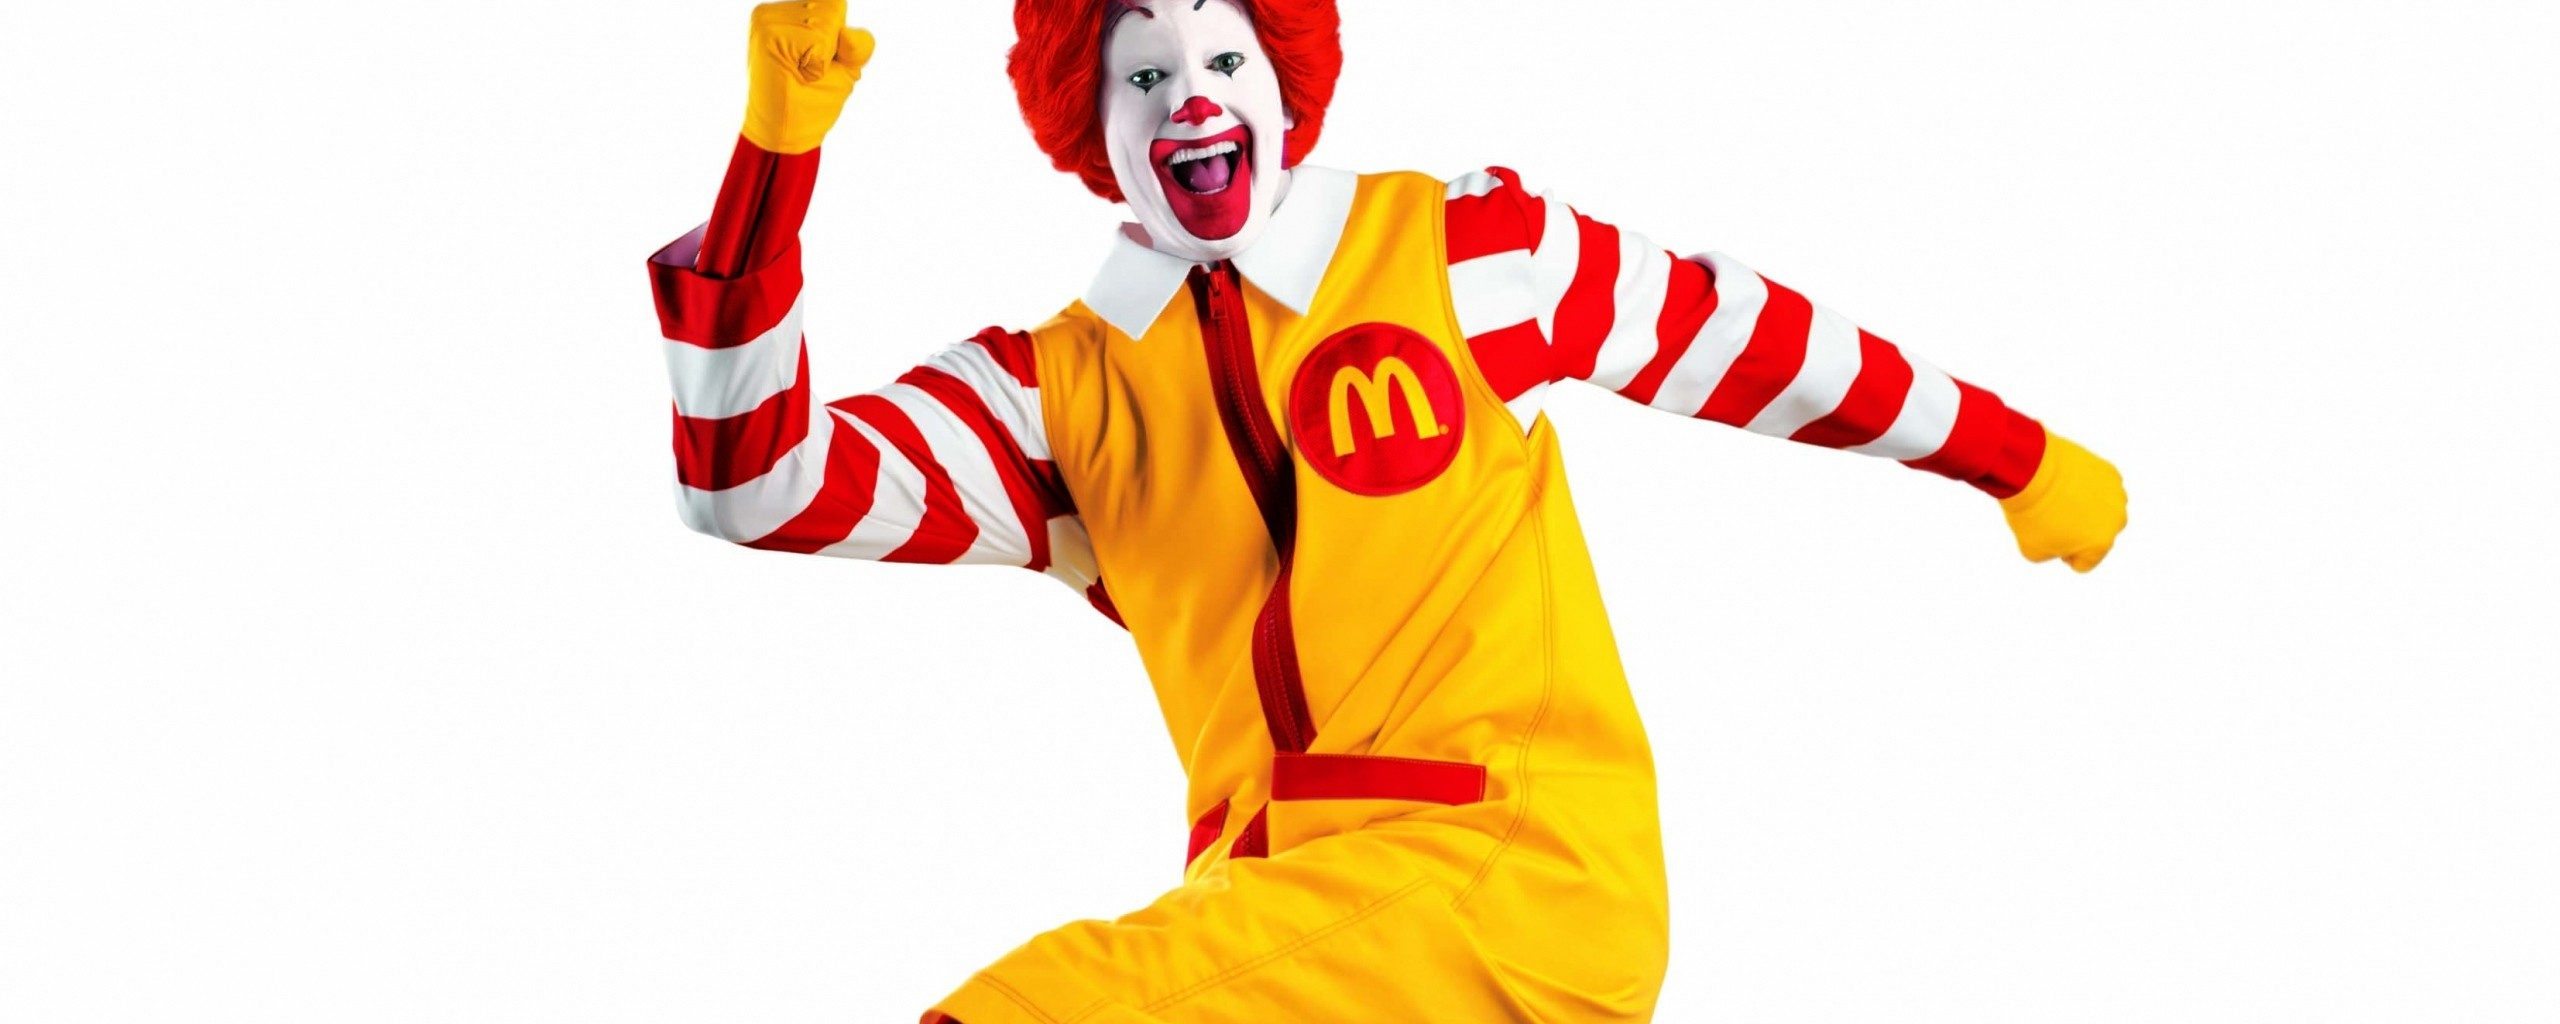 62124_mcdonalds_clown_us_corporation_fast_food_restaurant_subway_fortune_global_500_97981_2560x1600-2560×1024-c